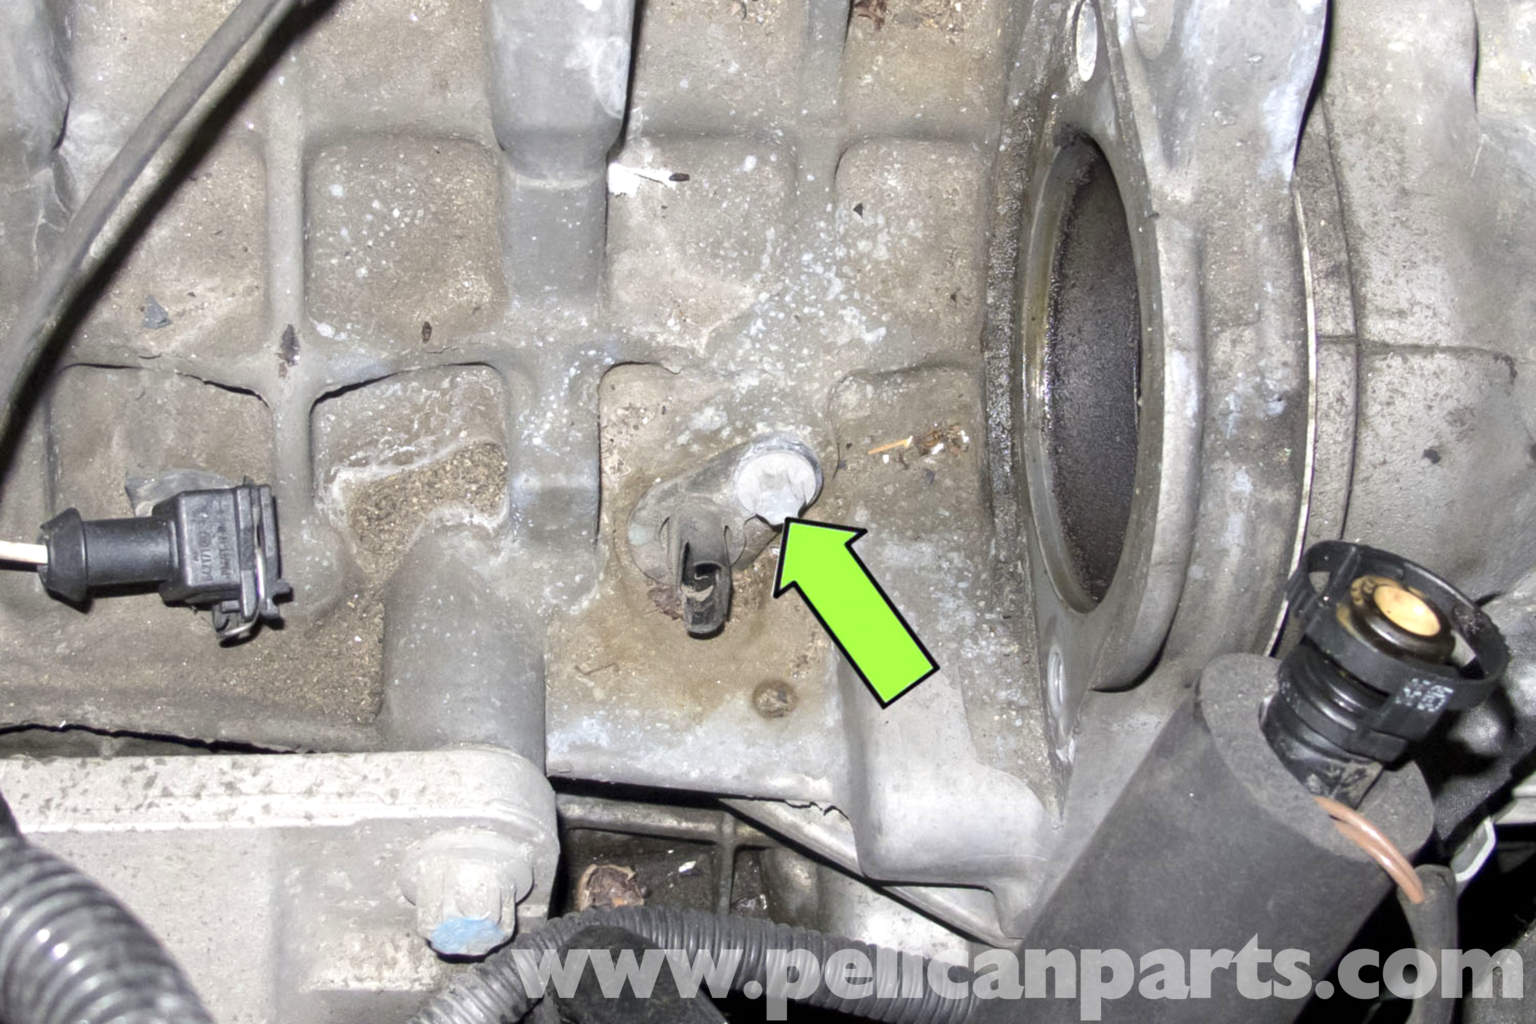 Subaru 2 0 Engine Diagram in addition Toyota Corolla Vvt I Engine Specs also Chevy Ls Engine Diagram additionally 2000 Ford Focus Engine Replacement also Starter Location On 2002 Vw Jetta. on timing sensor location honda